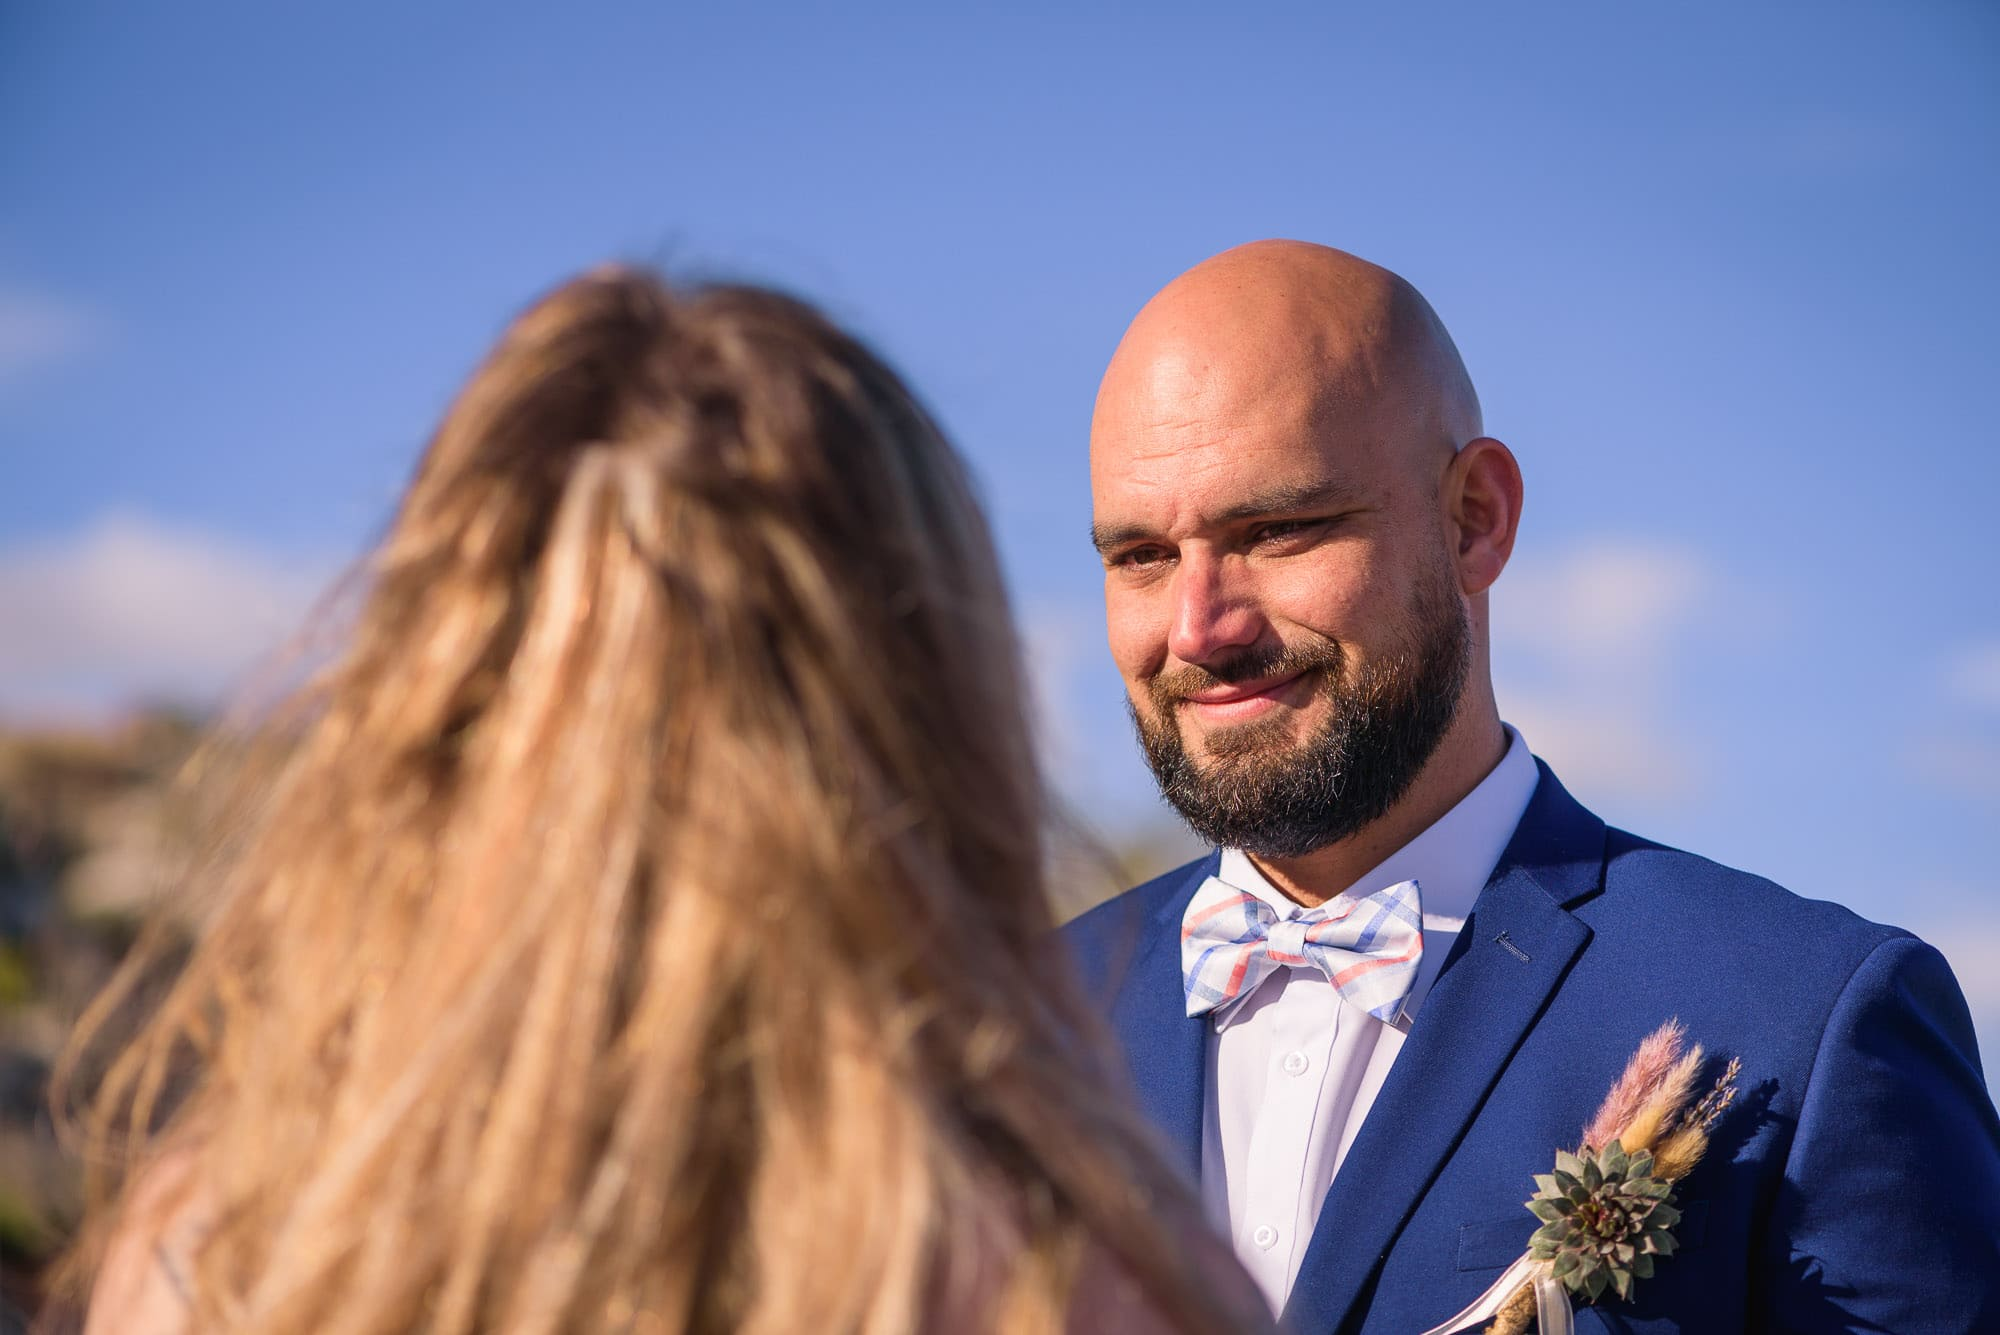 025_Alan_and_Heidi_Joshua_Tree_Spring_Elopement